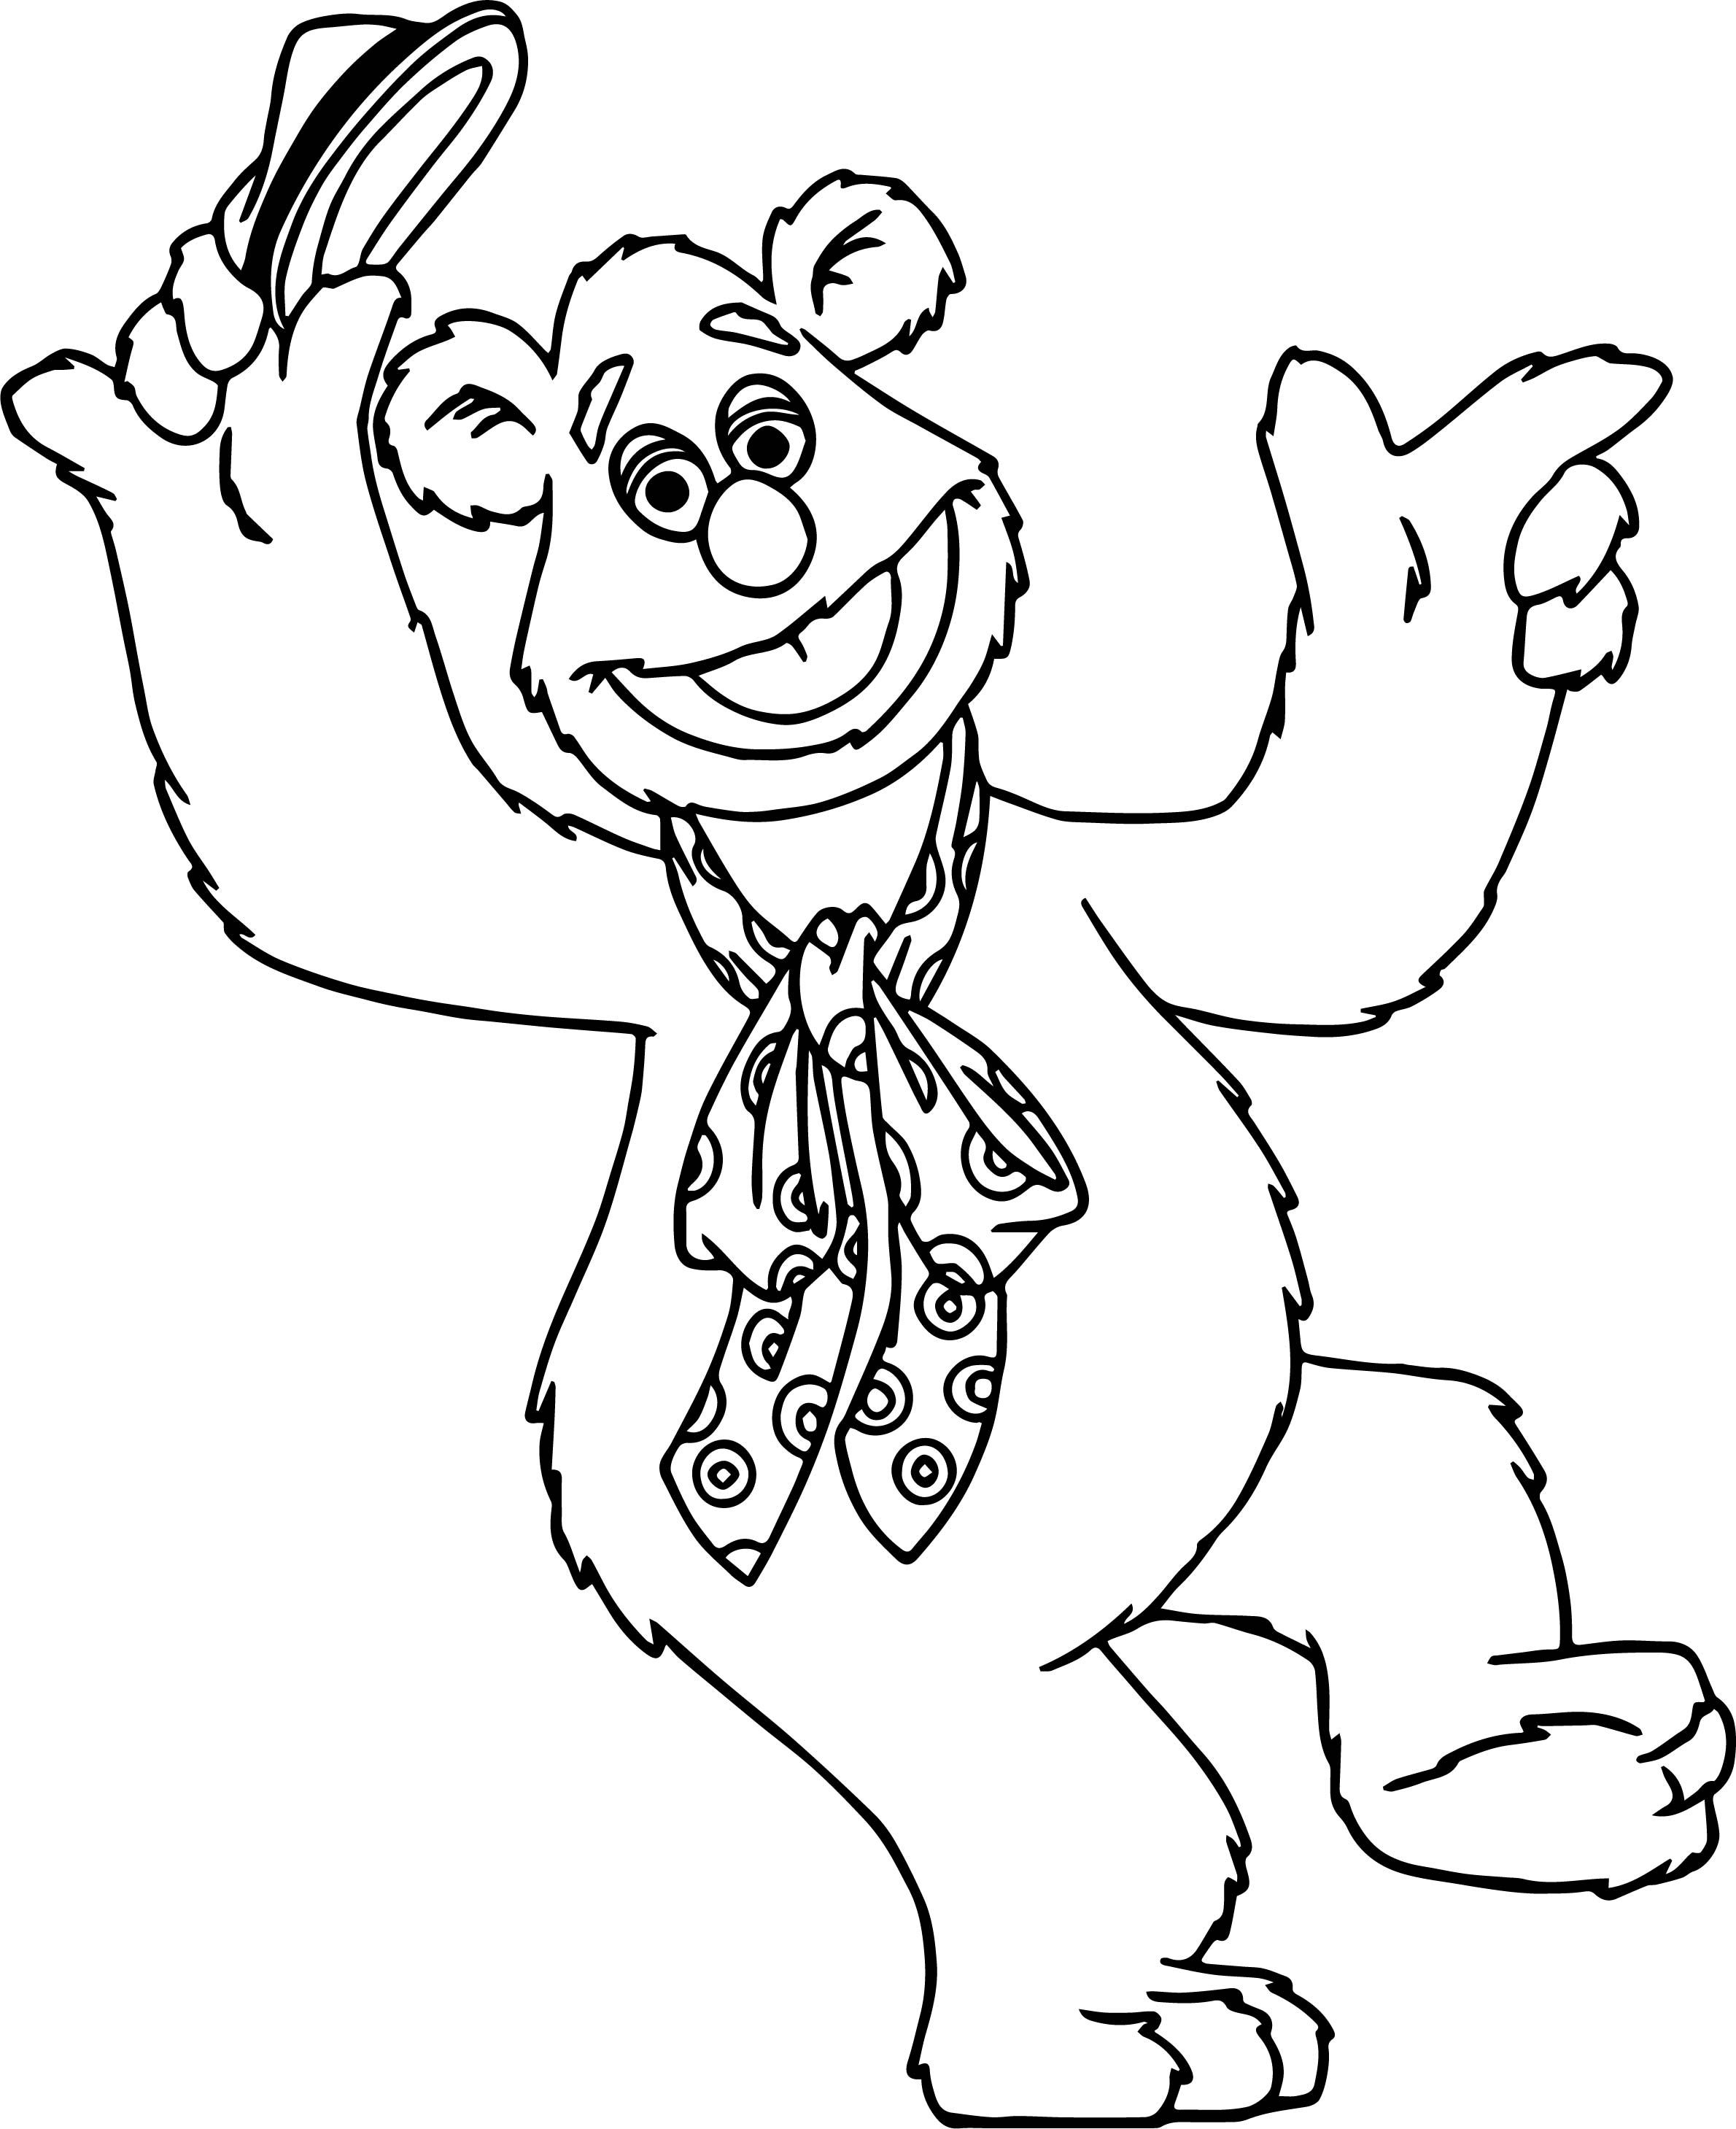 Muppets Animal Free Printable: The Muppets Fozzie Bear Coloring Pages